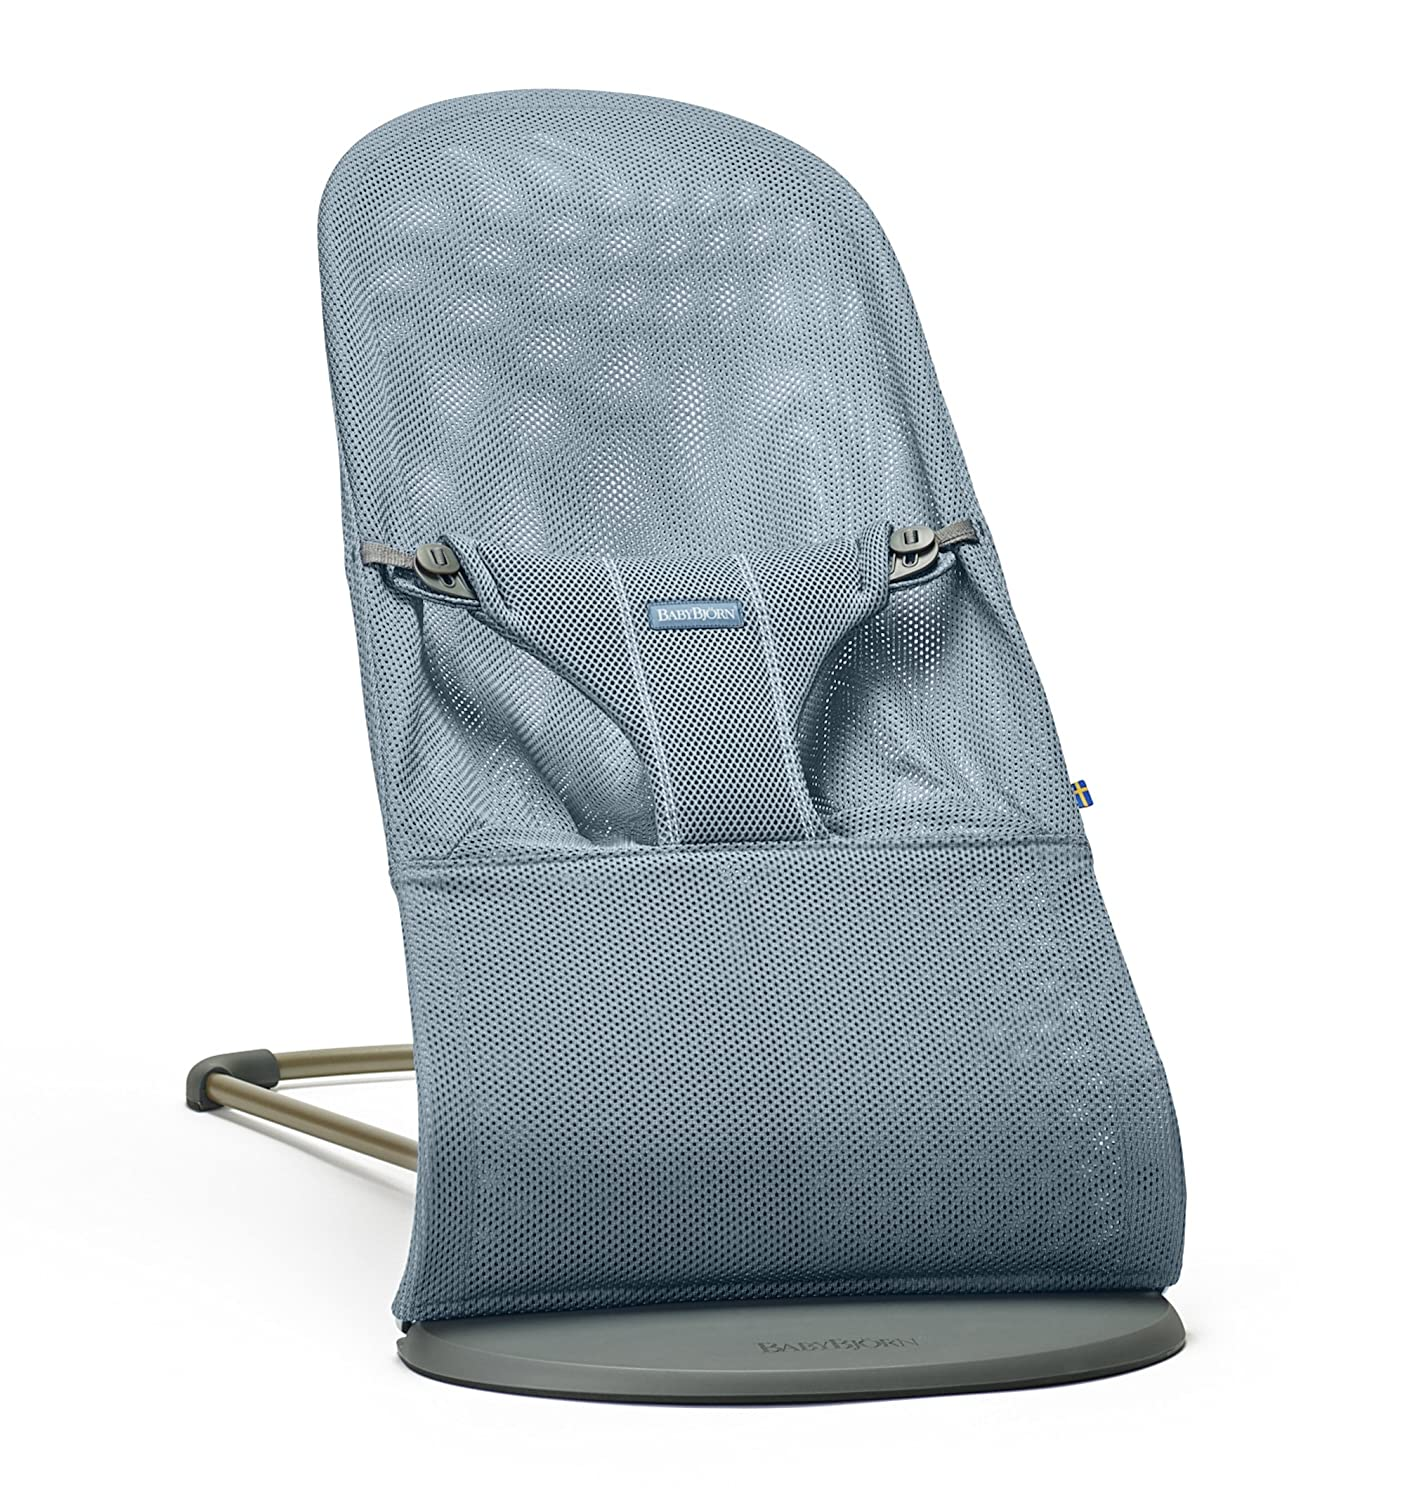 BabyBjorn Bouncer Bliss-Anthracite, Mesh 006013US